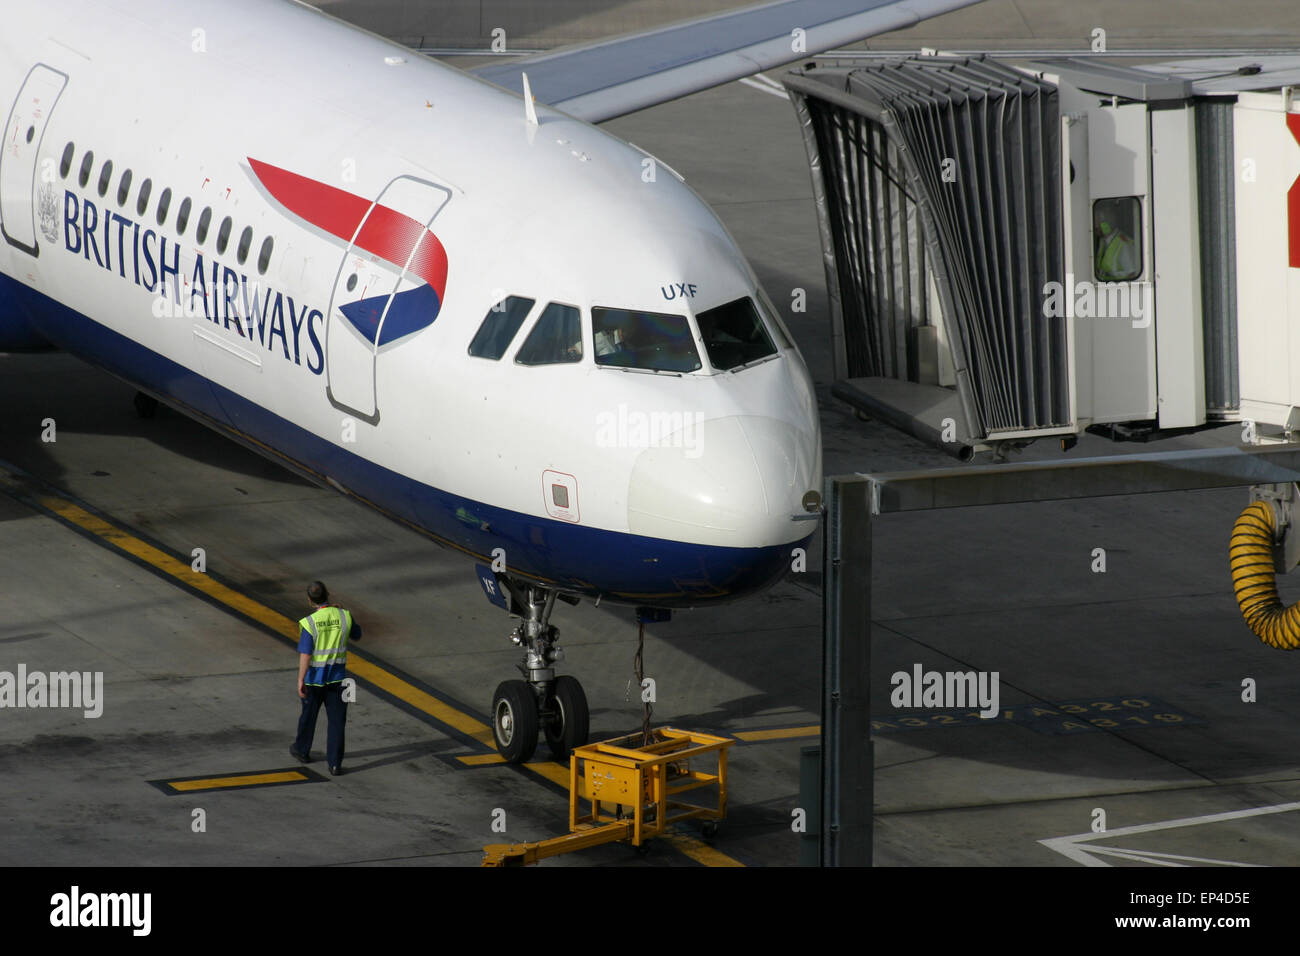 BRITISH AIRWAYS TERMINAL 5 HEATHROW - Stock Image